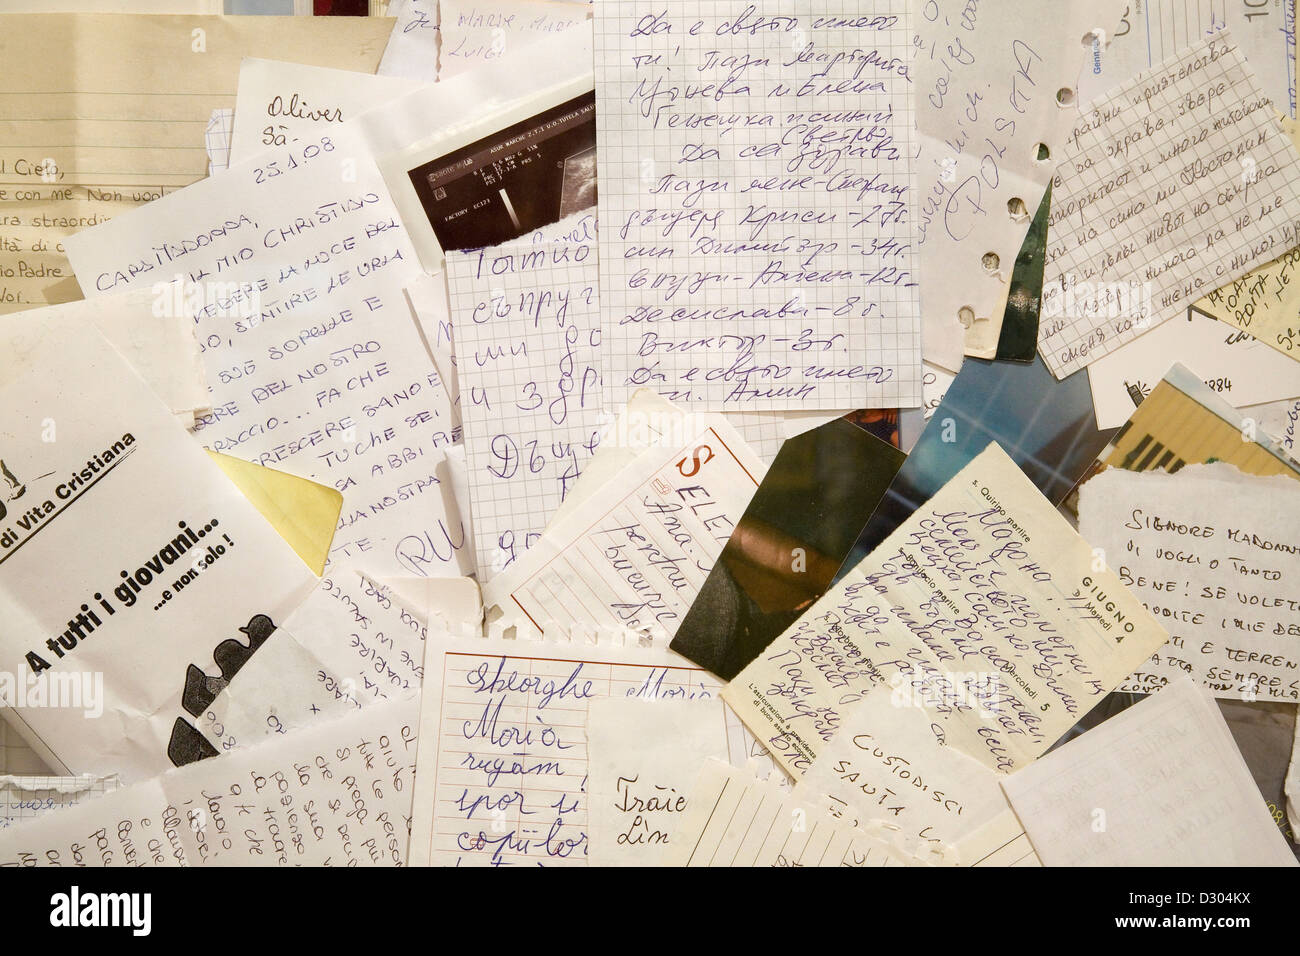 europe, italy, marche, loreto, sanctuary of the holy house, letters of the pilgrims - Stock Image